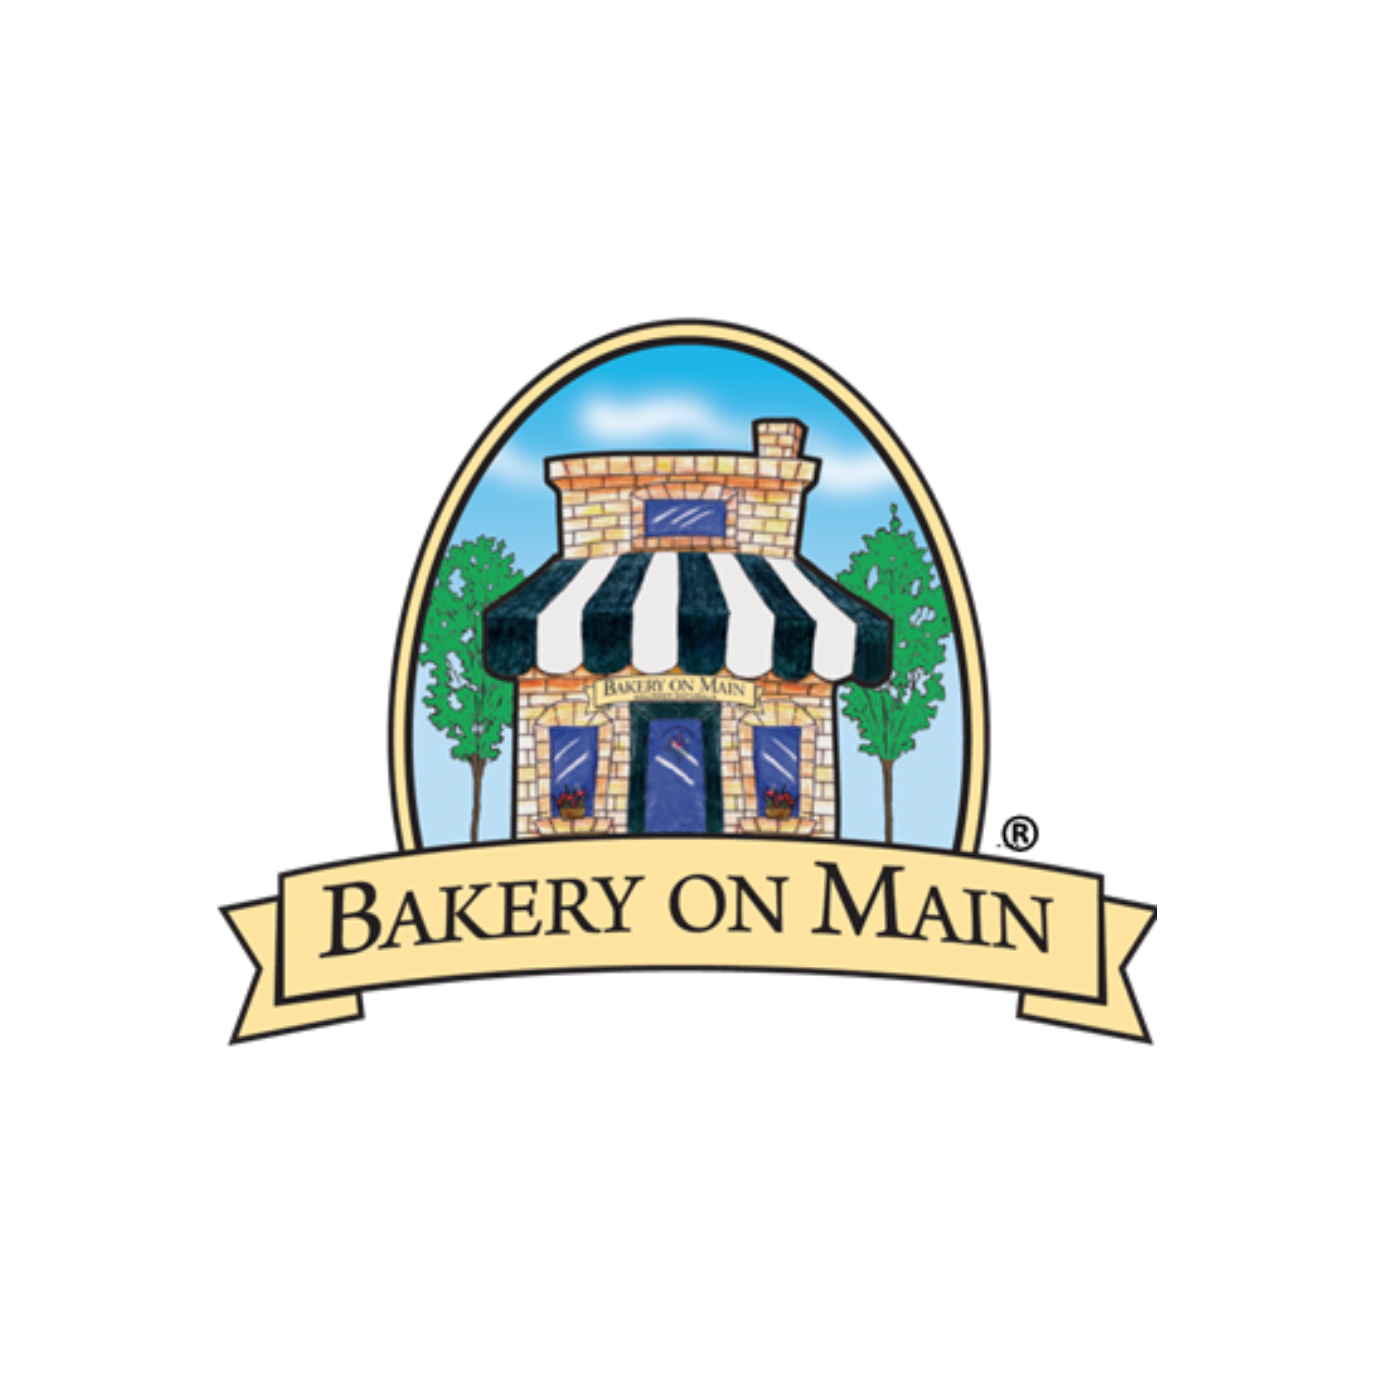 Bakery on Main logo - Certified Paleo, Keto Certified by the Paleo Foundation